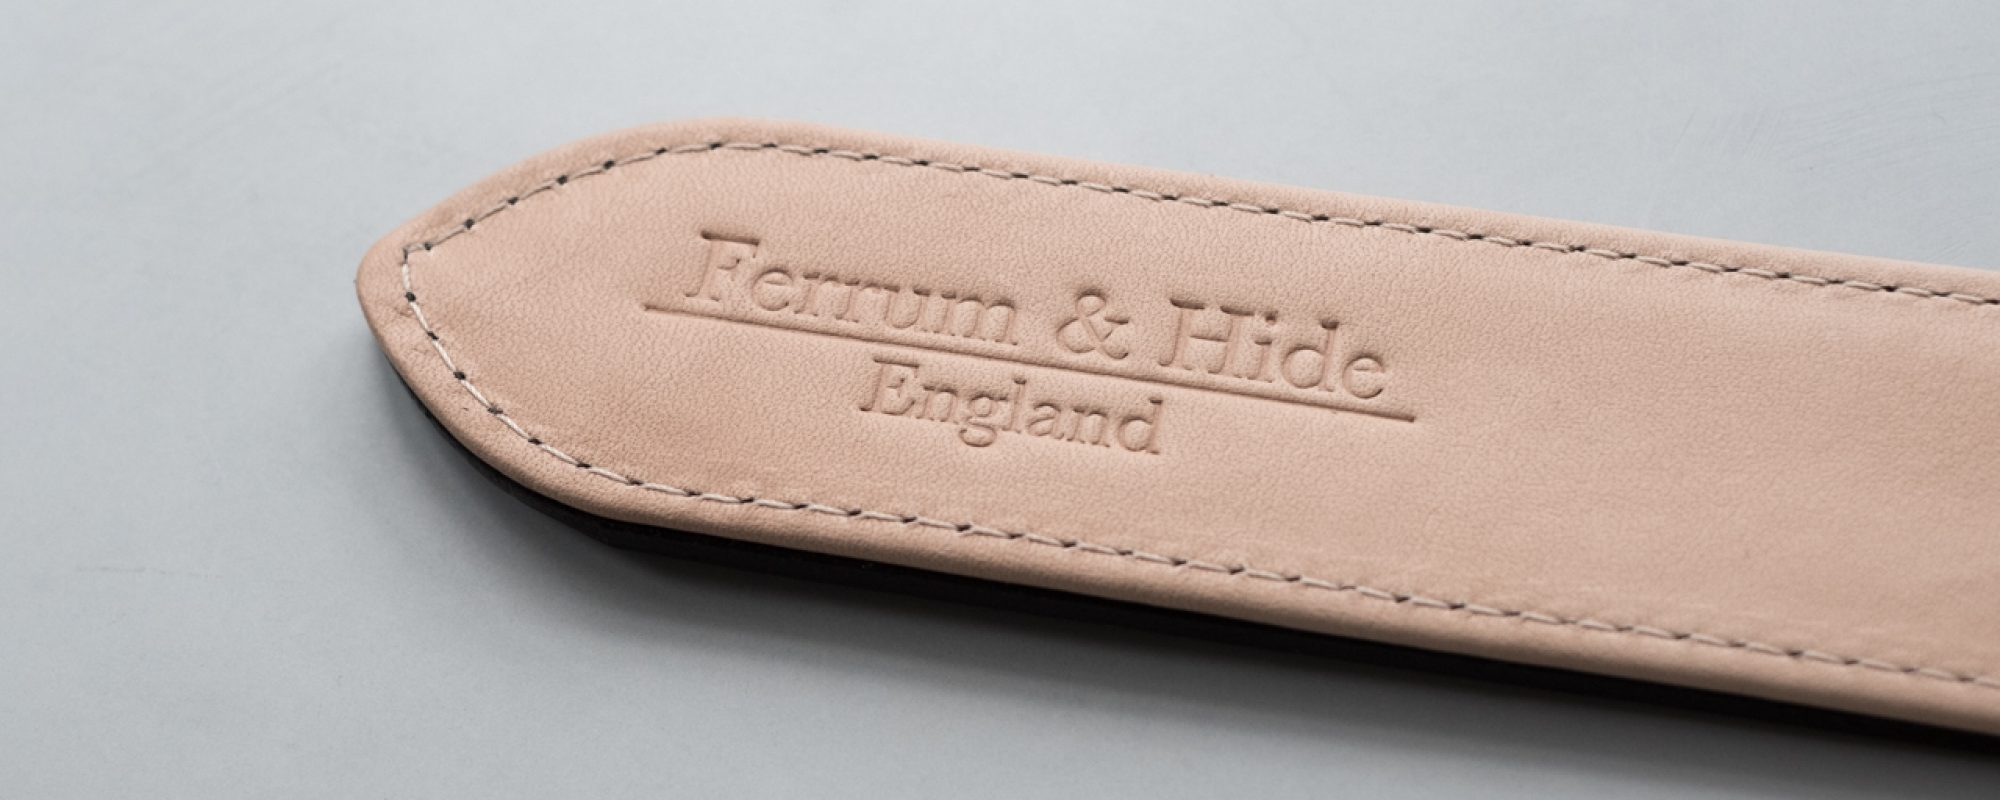 ferrum and Hide Tarnsjo lining leather with embossing